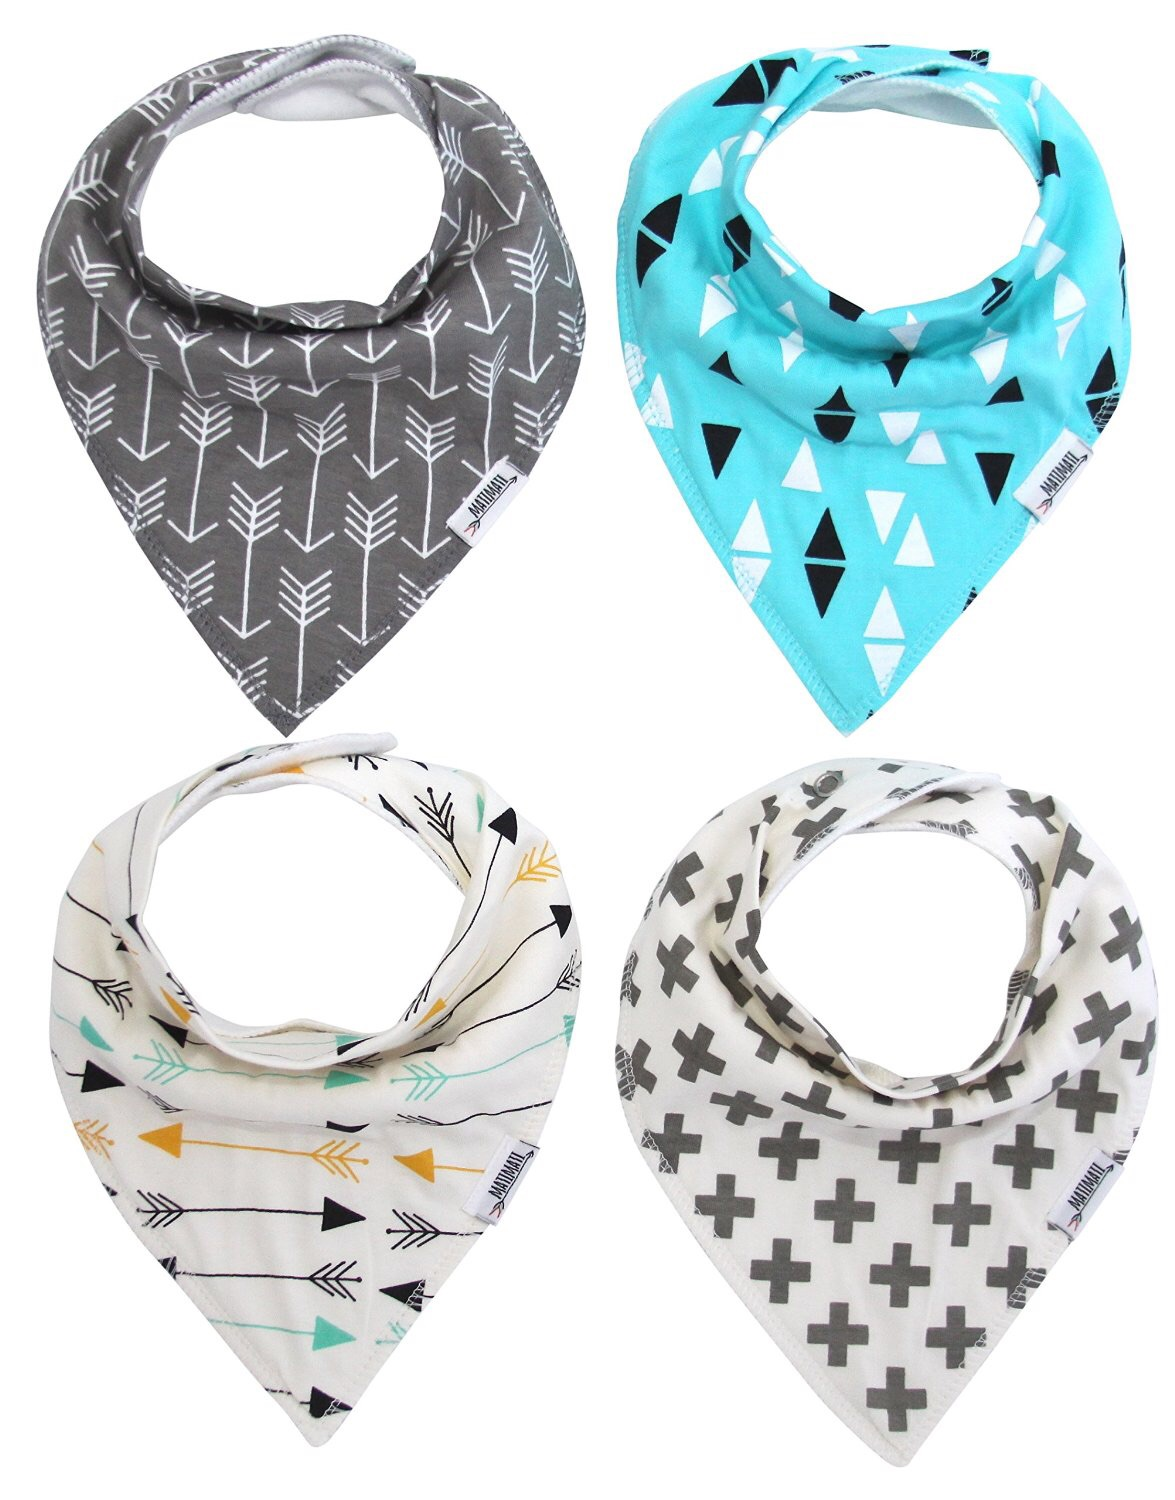 Matimati bandana bibs (set of four)   - $24.75 (gift)